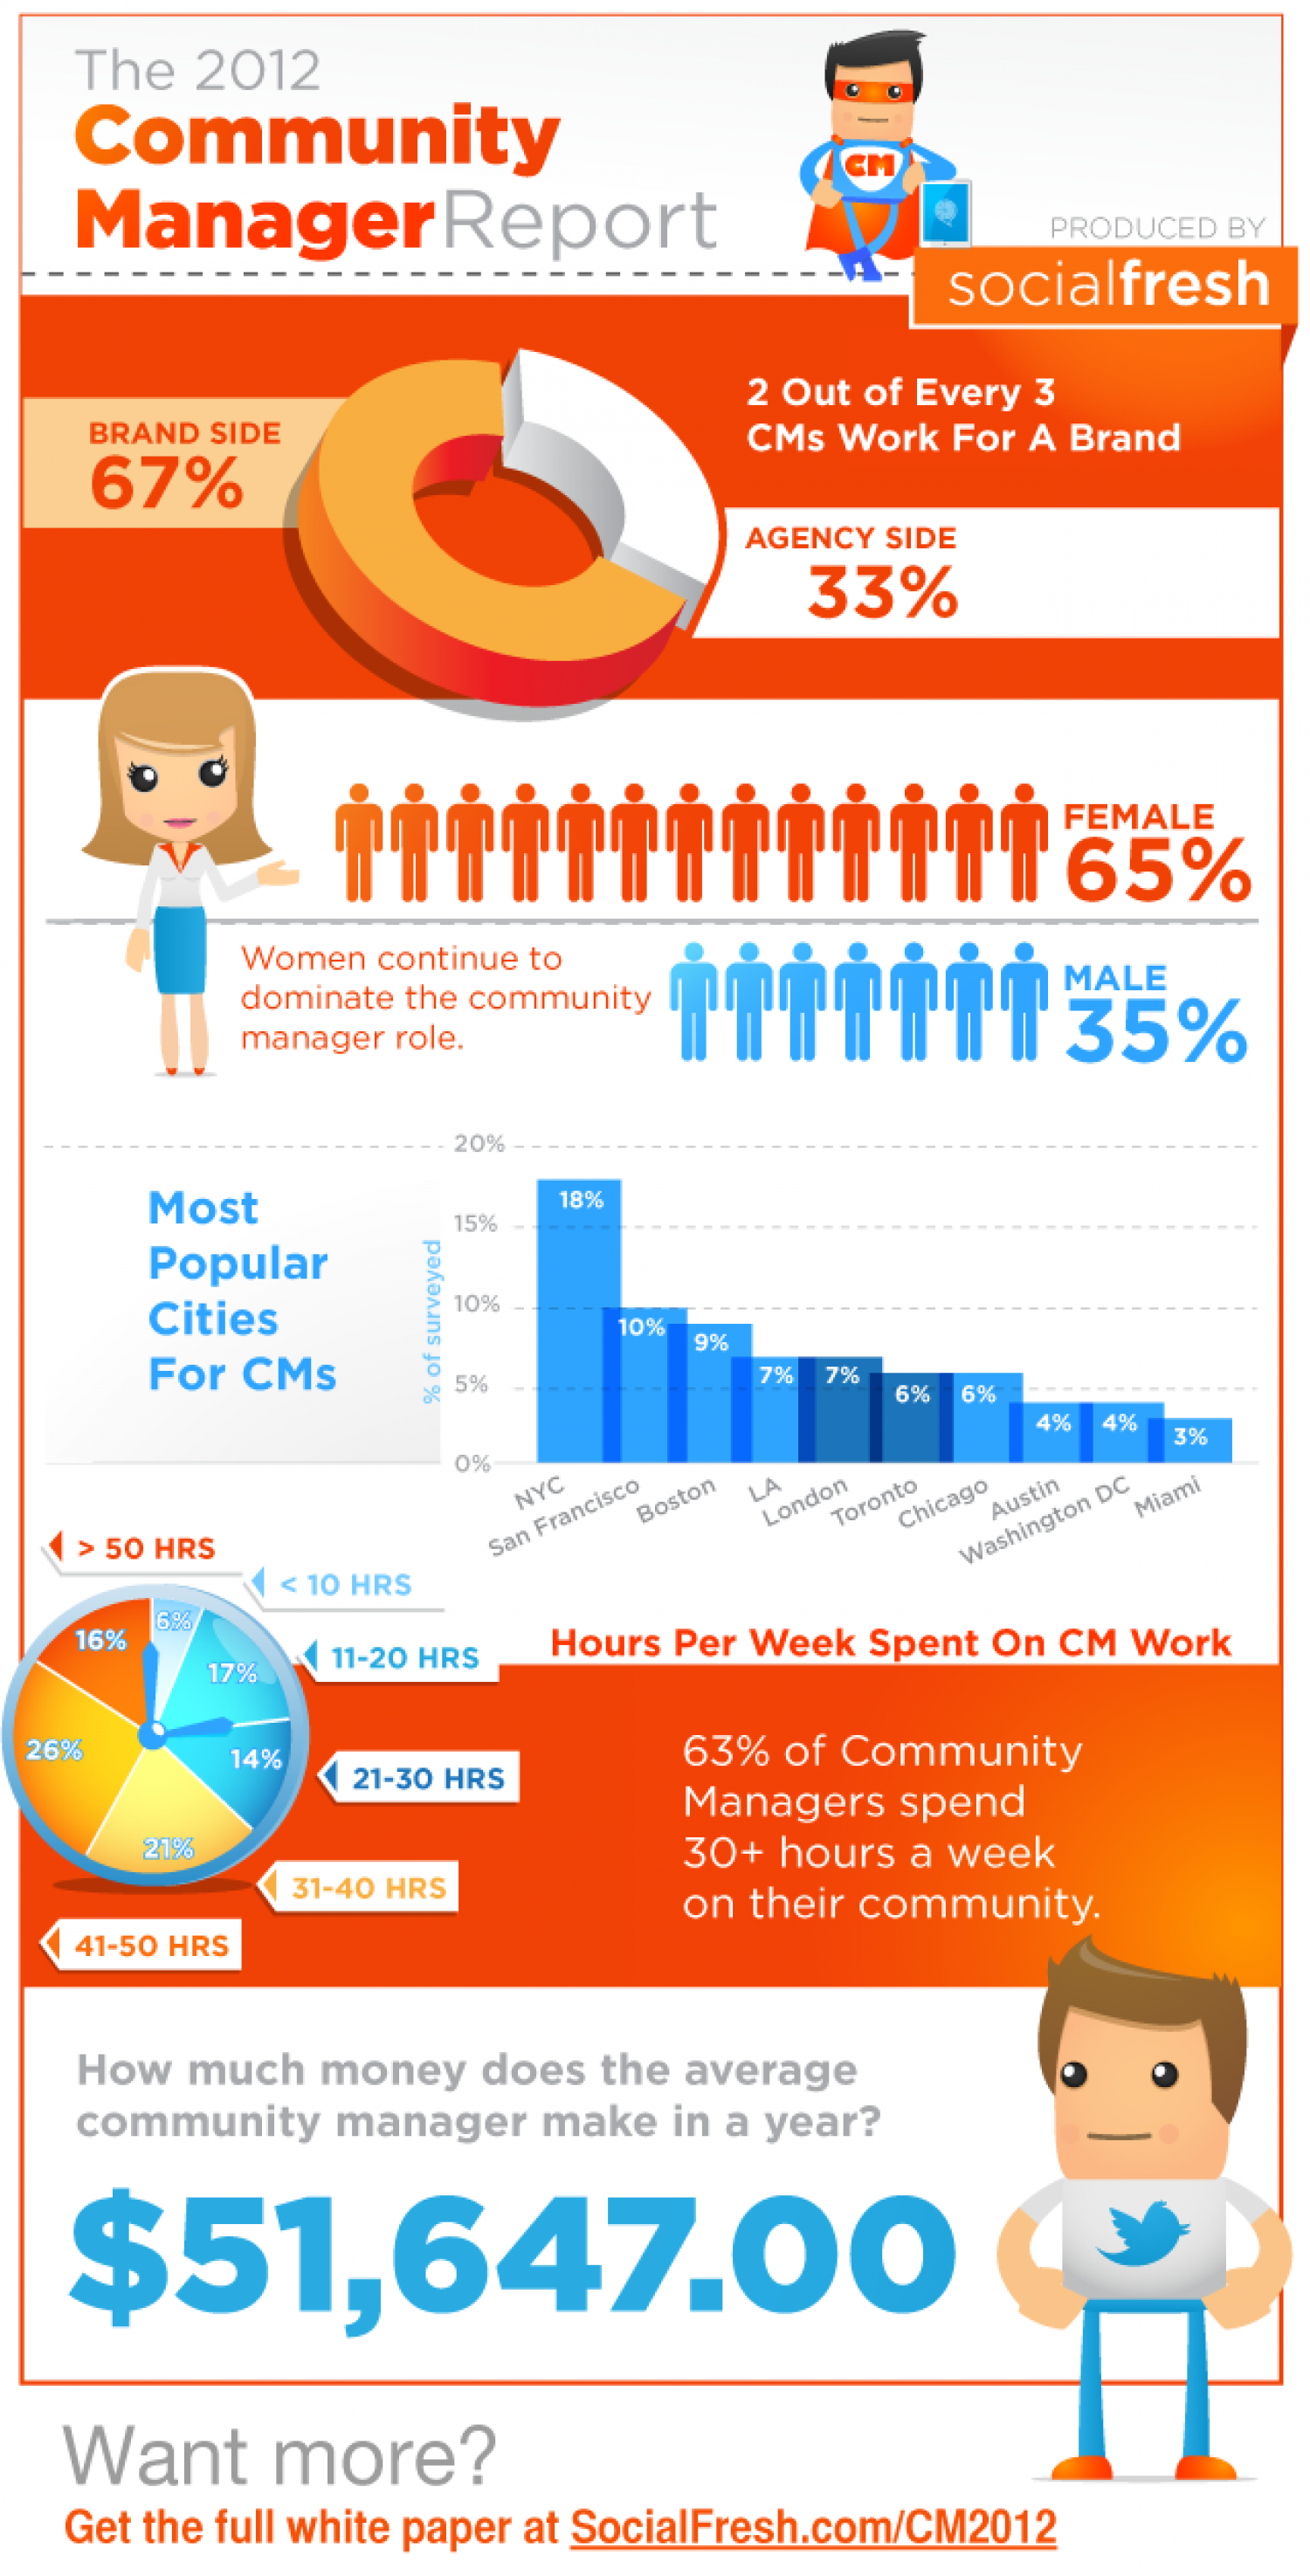 The 2012 Community Manager Report Infographic